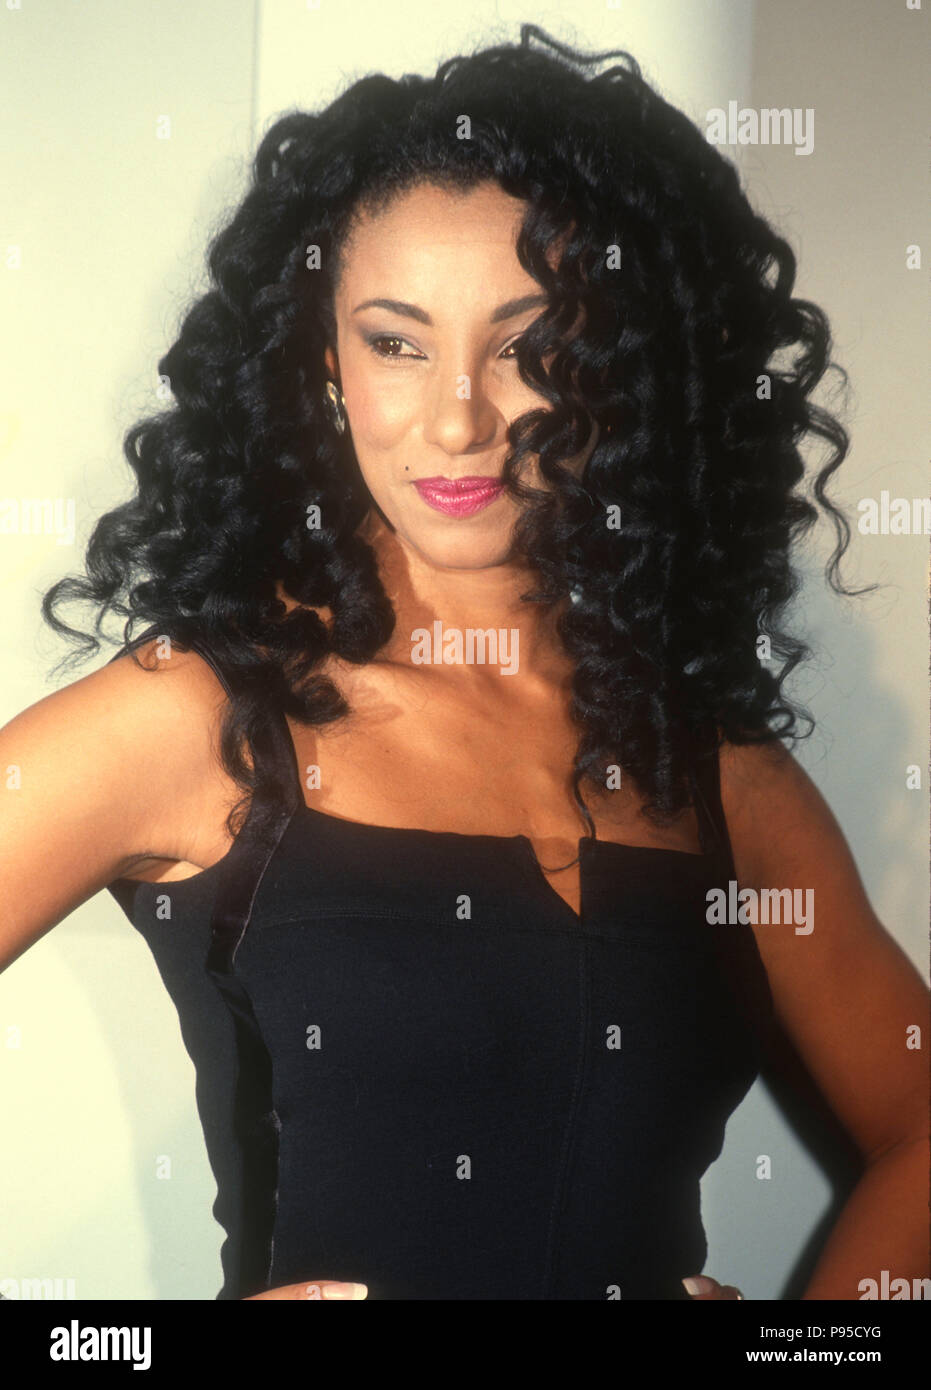 Downtown Julie Brown nudes (81 fotos) Young, Snapchat, cleavage